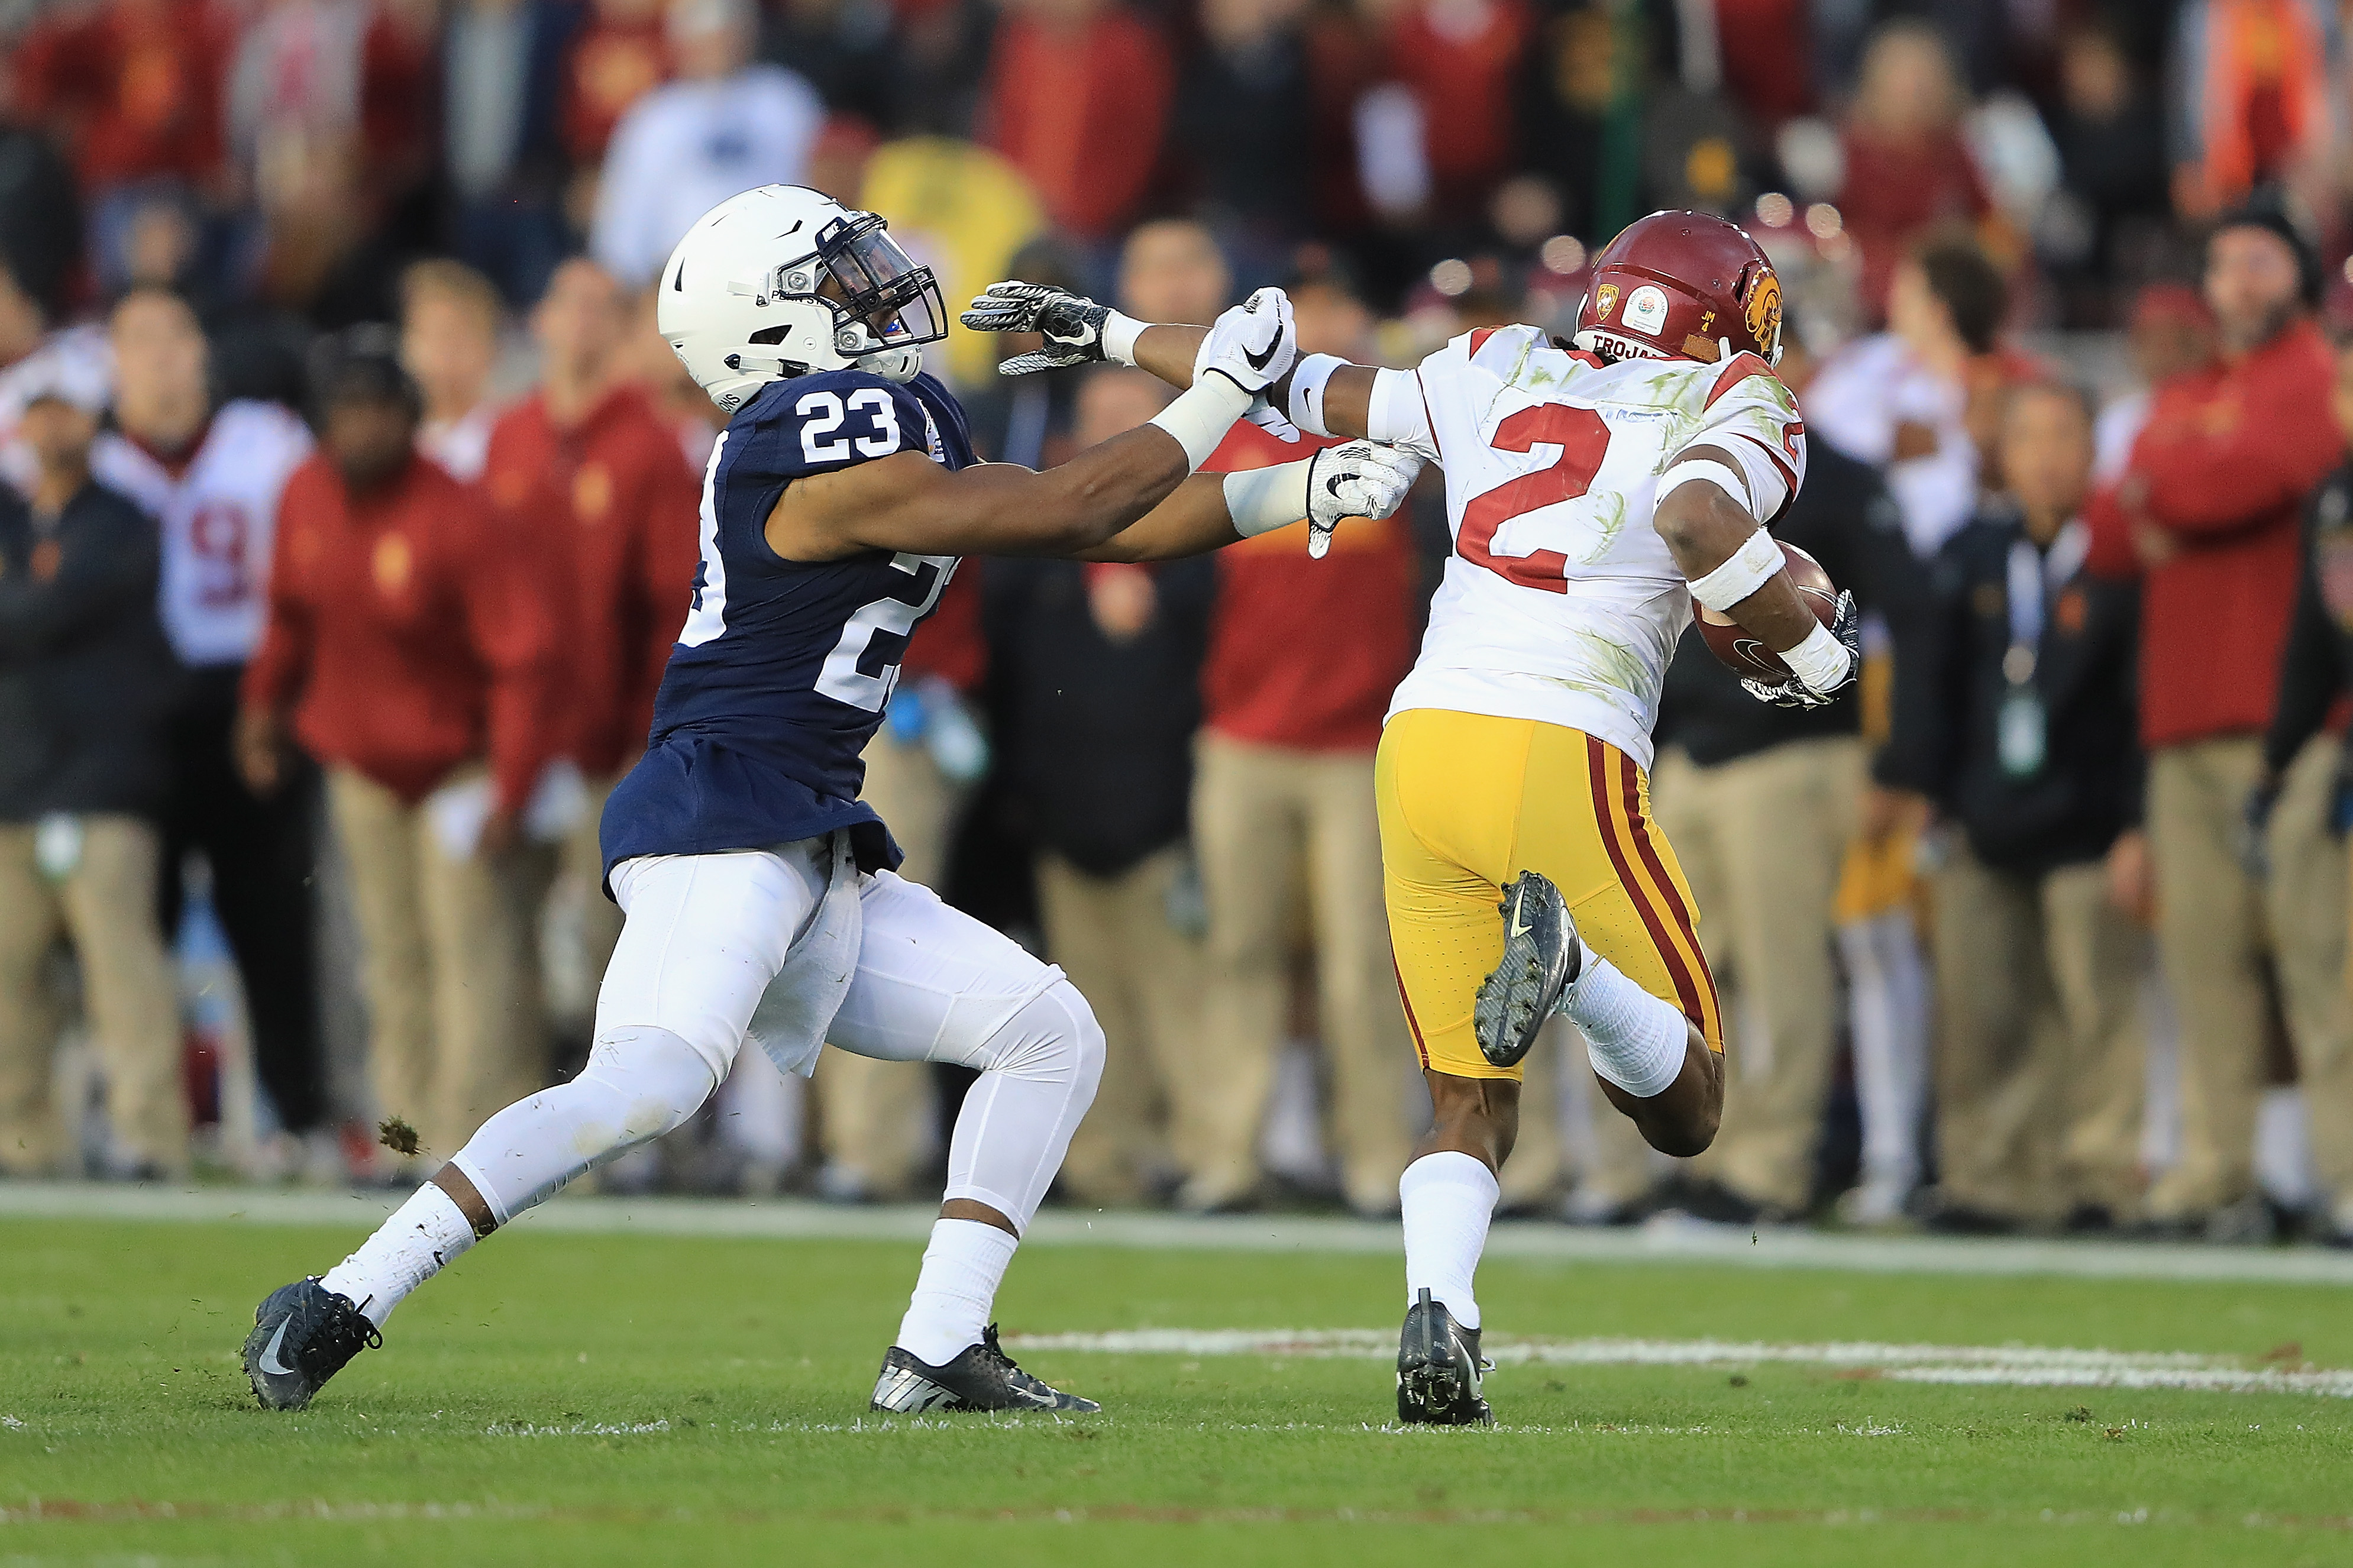 Rose Bowl Game presented by Northwestern Mutual - USC v Penn State